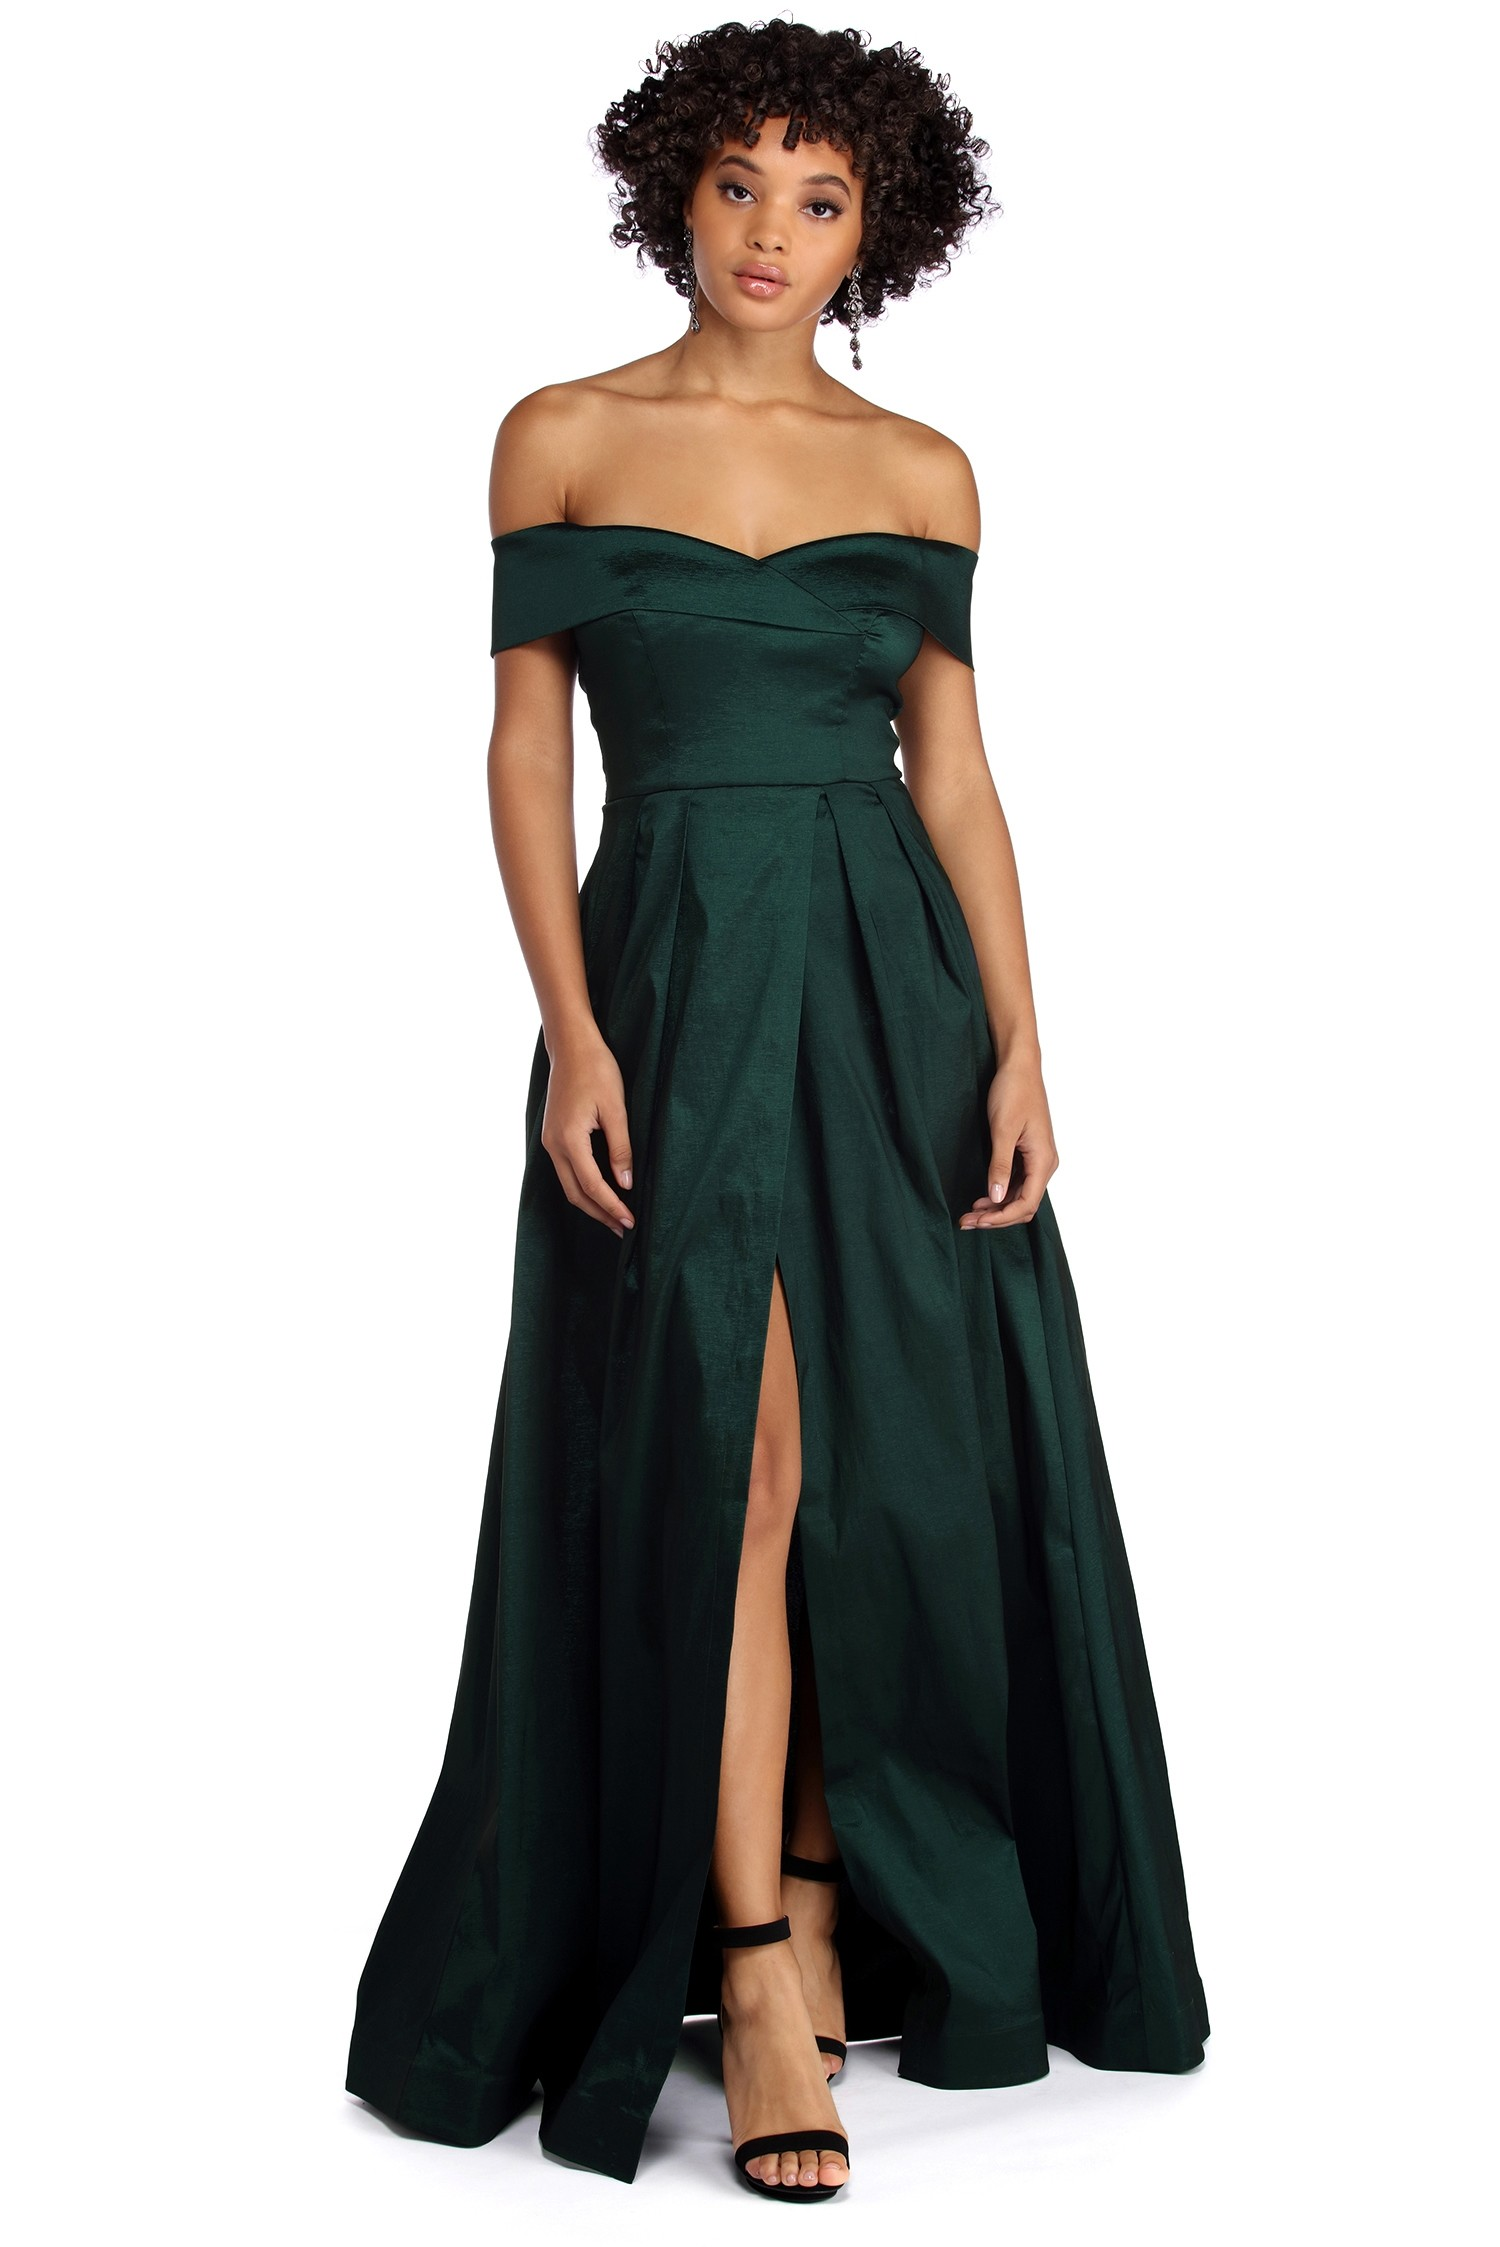 Windsor Maci Off The Shoulder Gown- $79